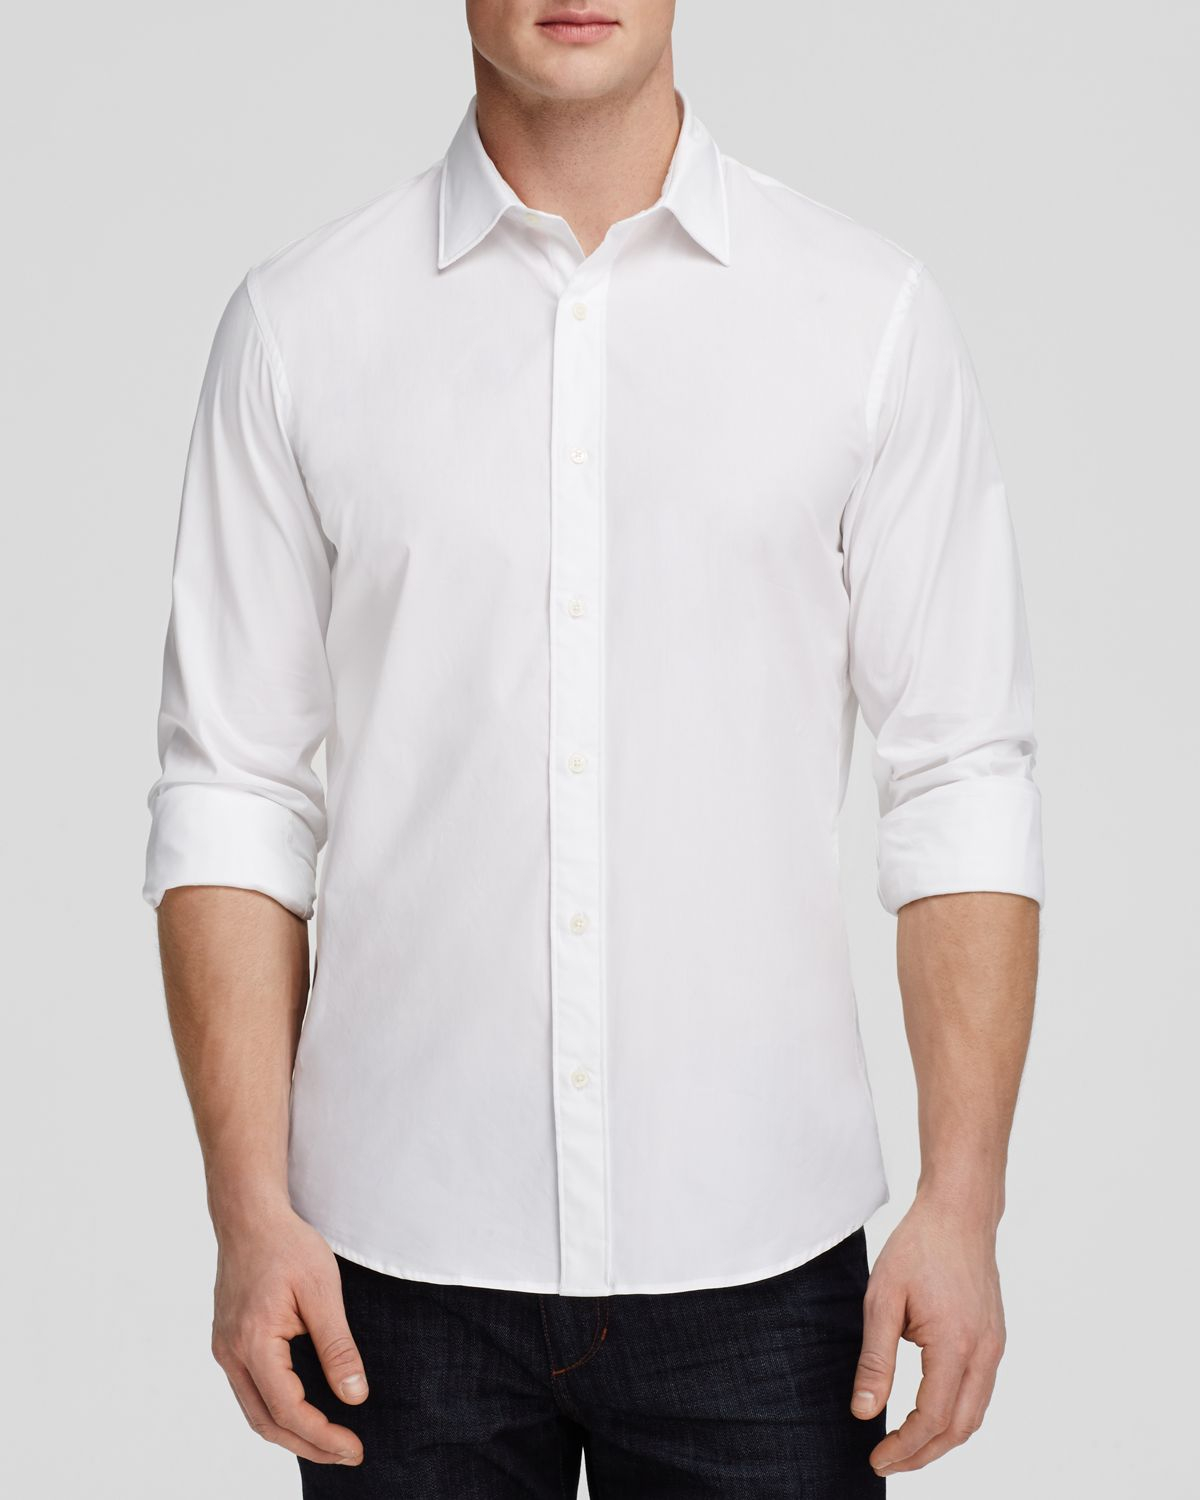 Michael kors stretch cotton button down shirt slim fit for Athletic fit button down shirts